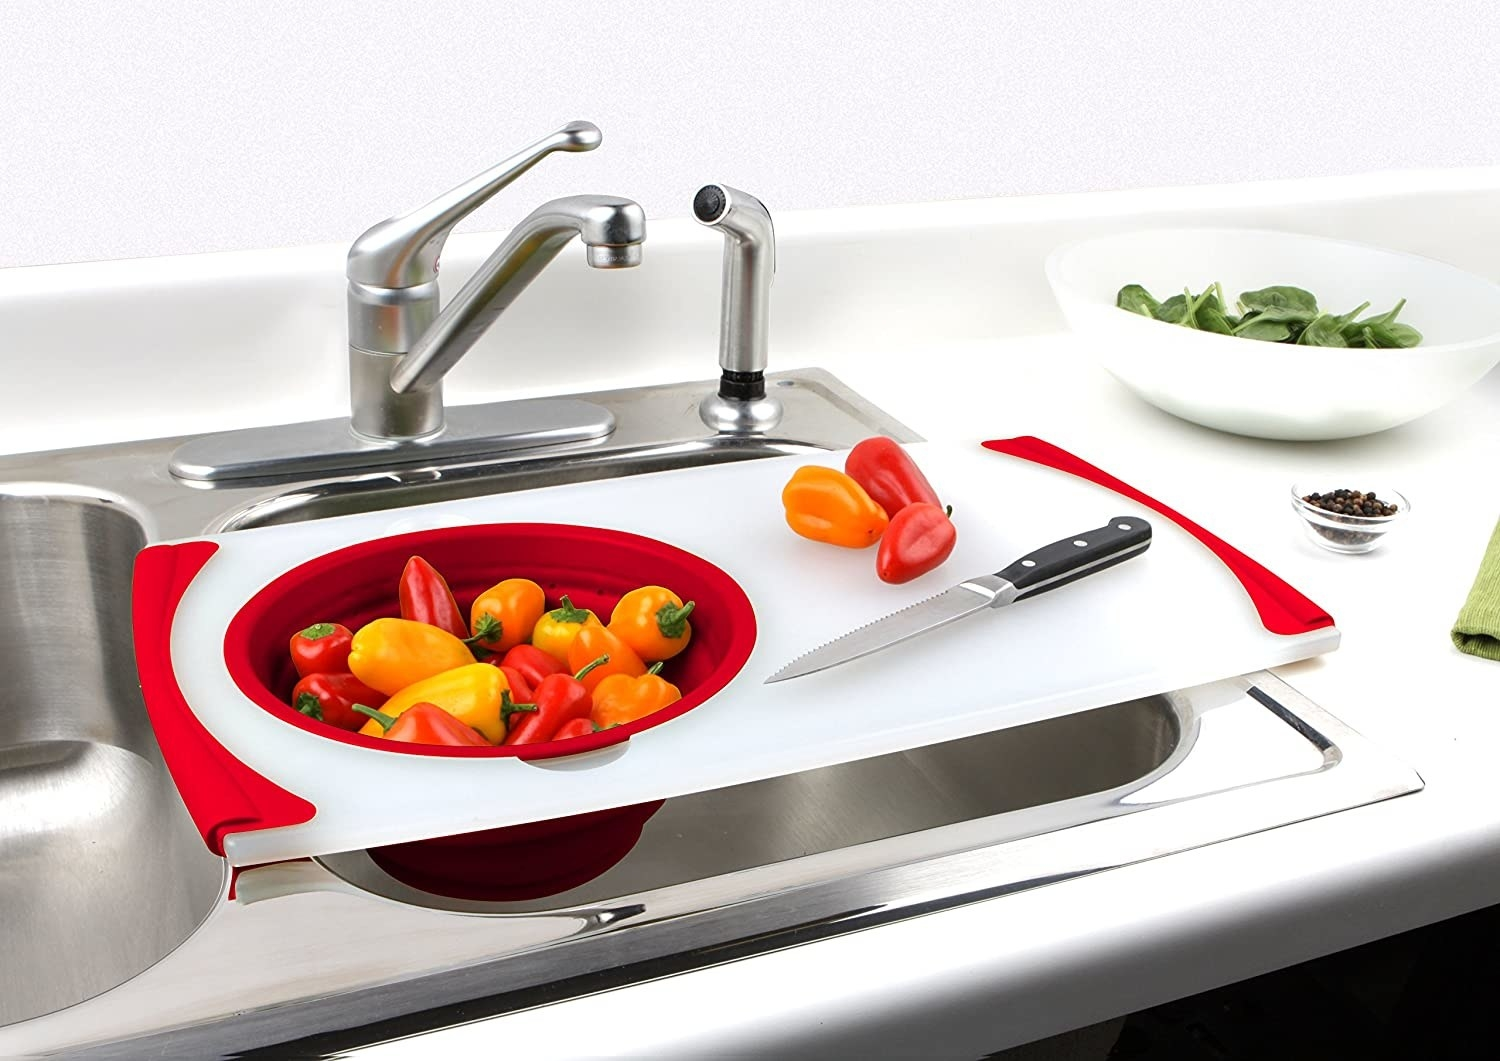 Strainer cutting board in use over kitchen sink